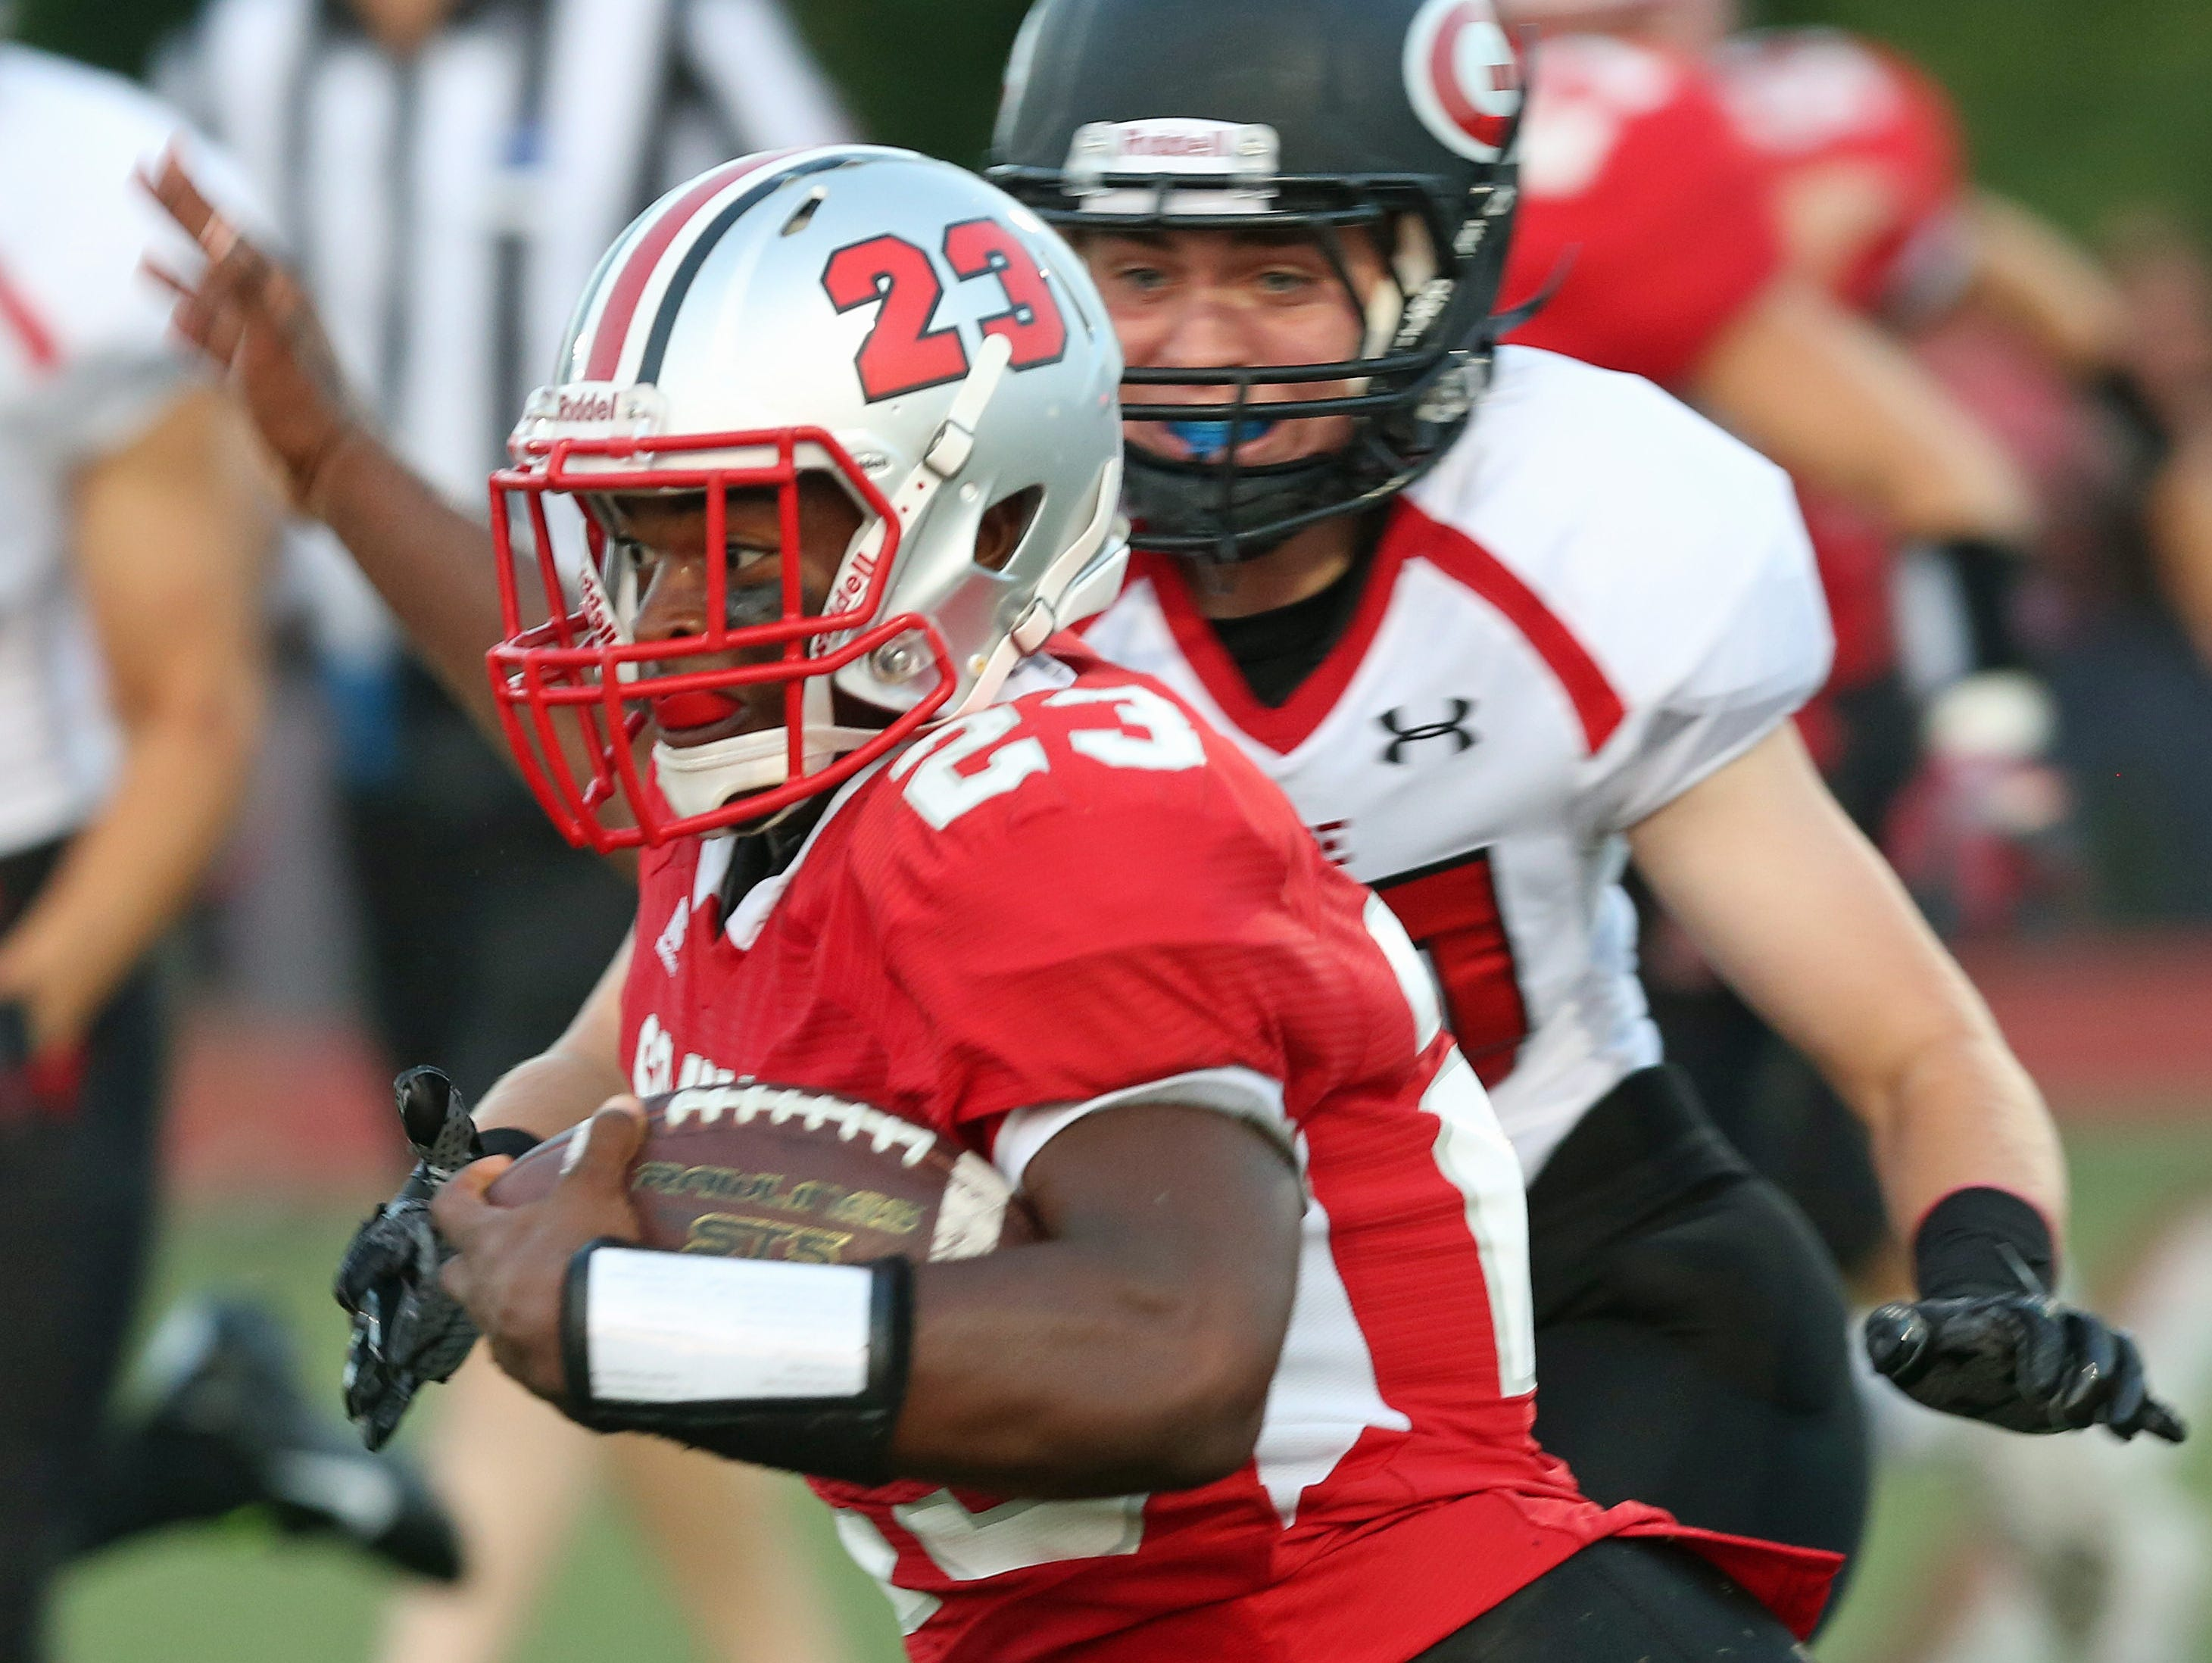 Somers's Messiah Horne (23 ) finds some running room in the Rye defense during first half action at Somers High School Sept. 4, 2015